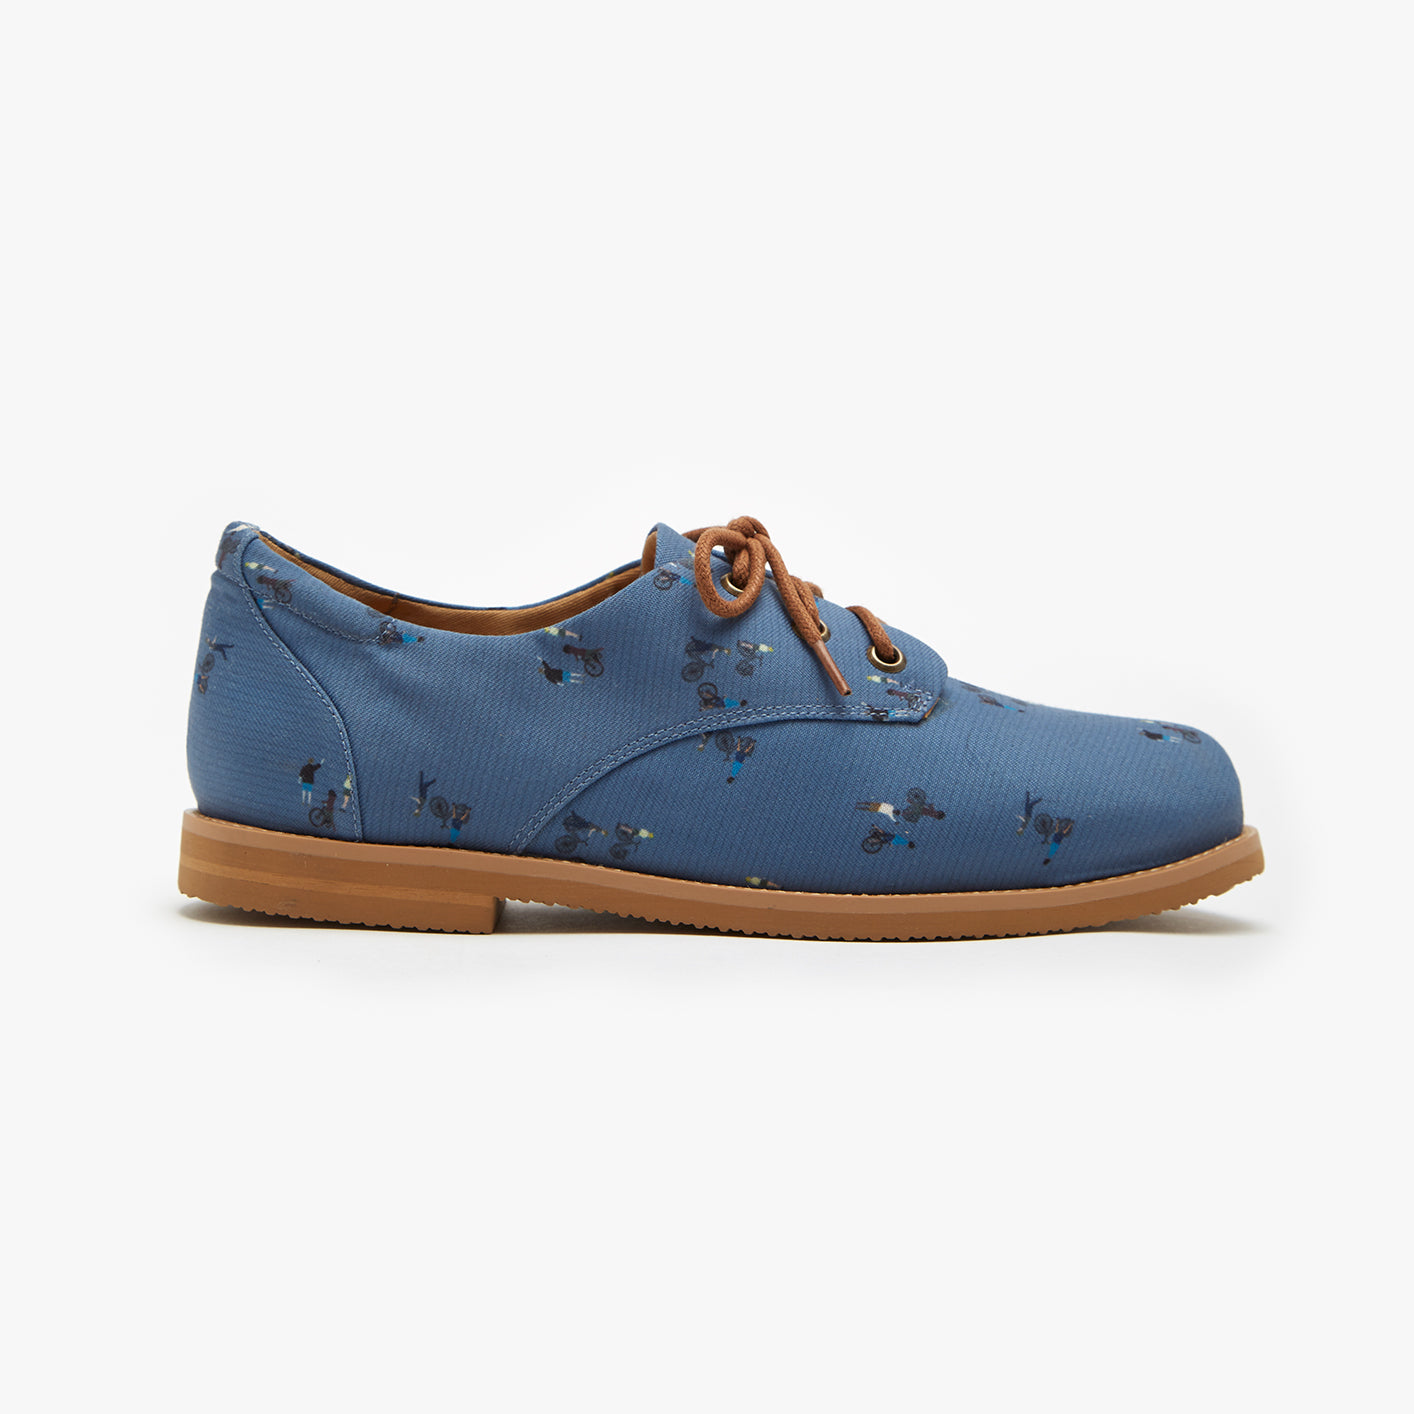 PEDAL OXFORD - Insectashoes brasil